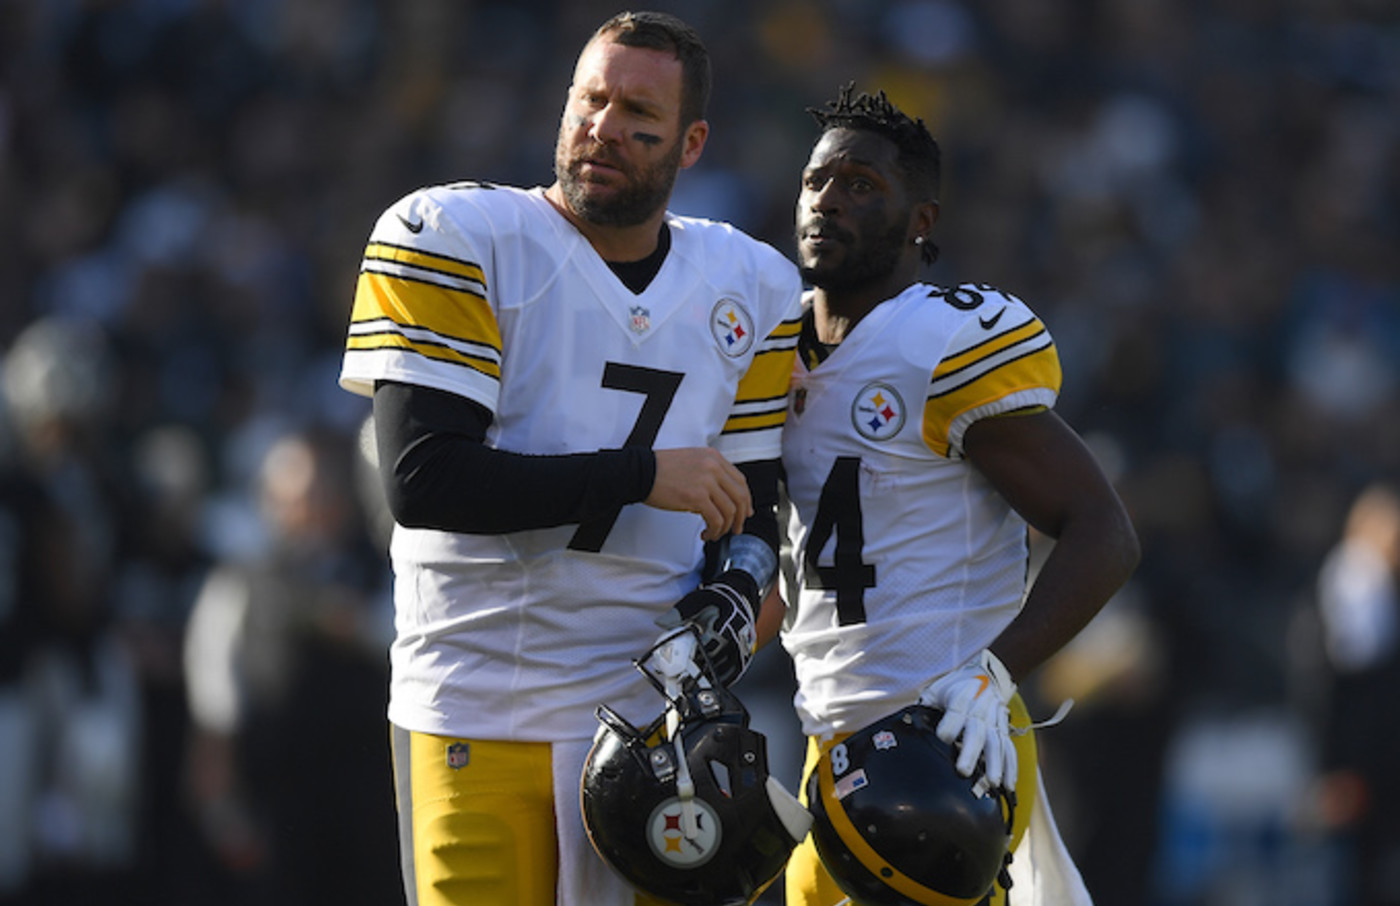 Antonio Brown and Ben Roethlisberger of the Steelers looks on.